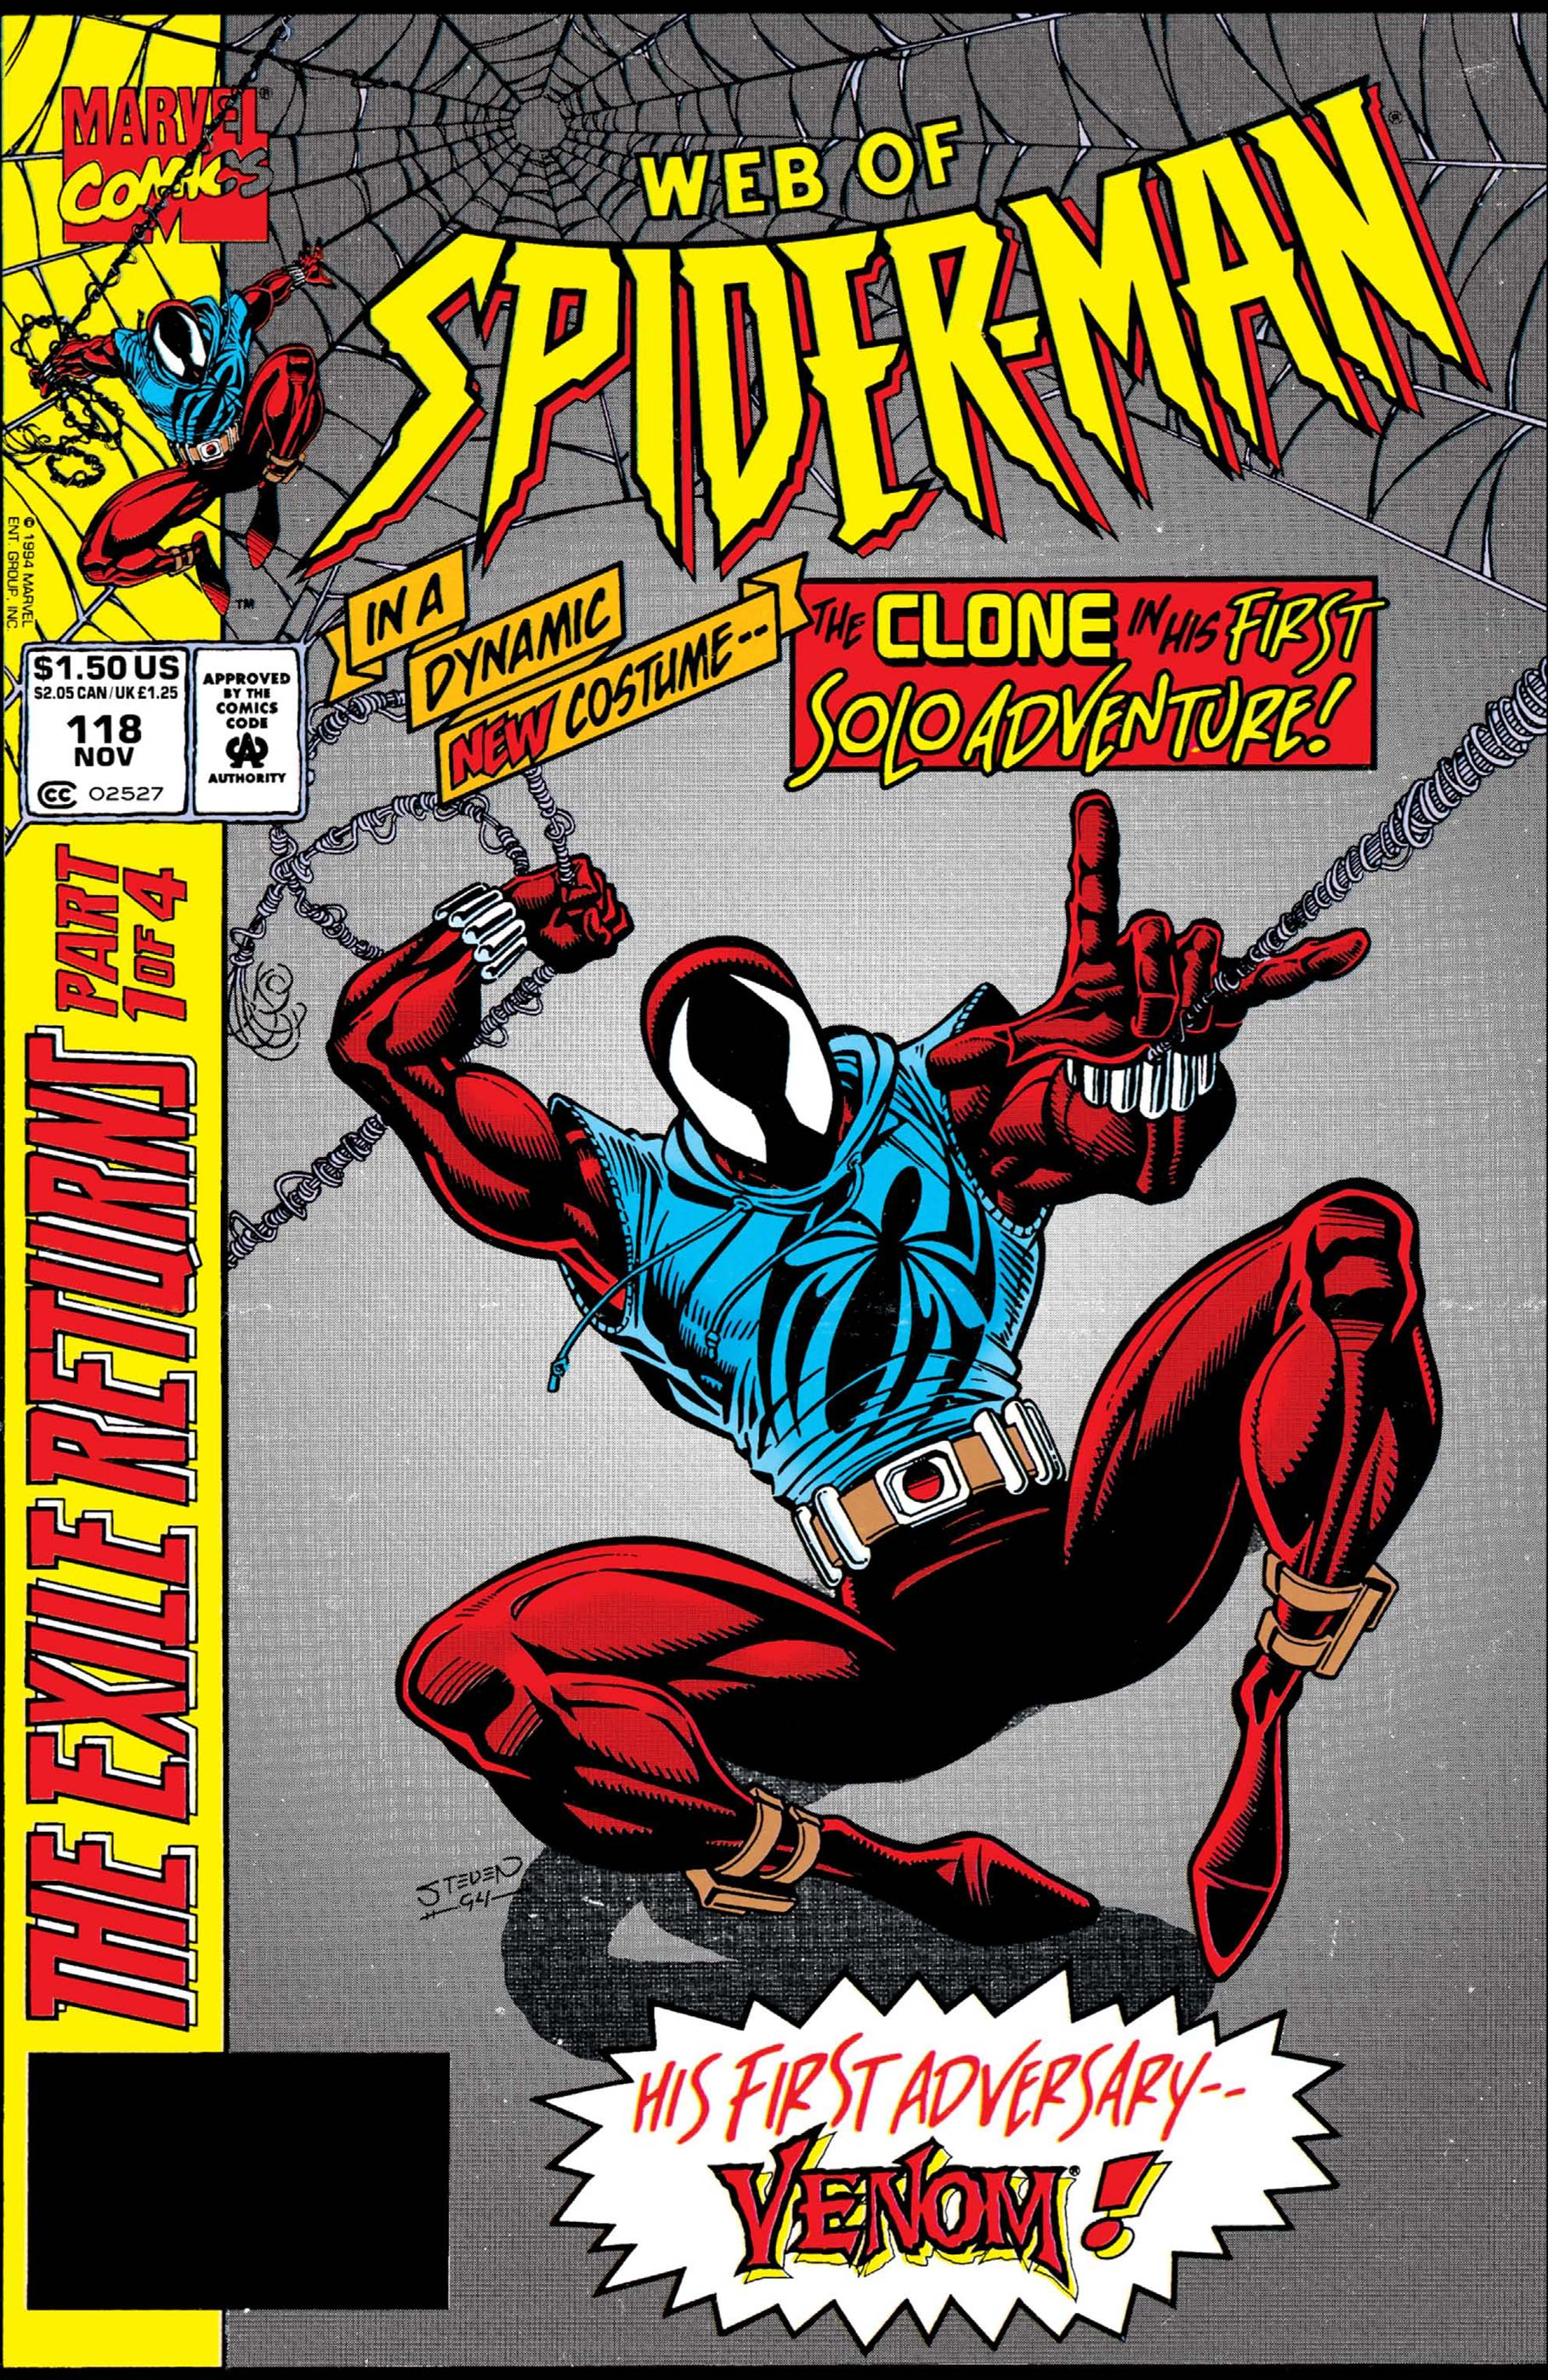 Web of Spider-Man (1985) #118